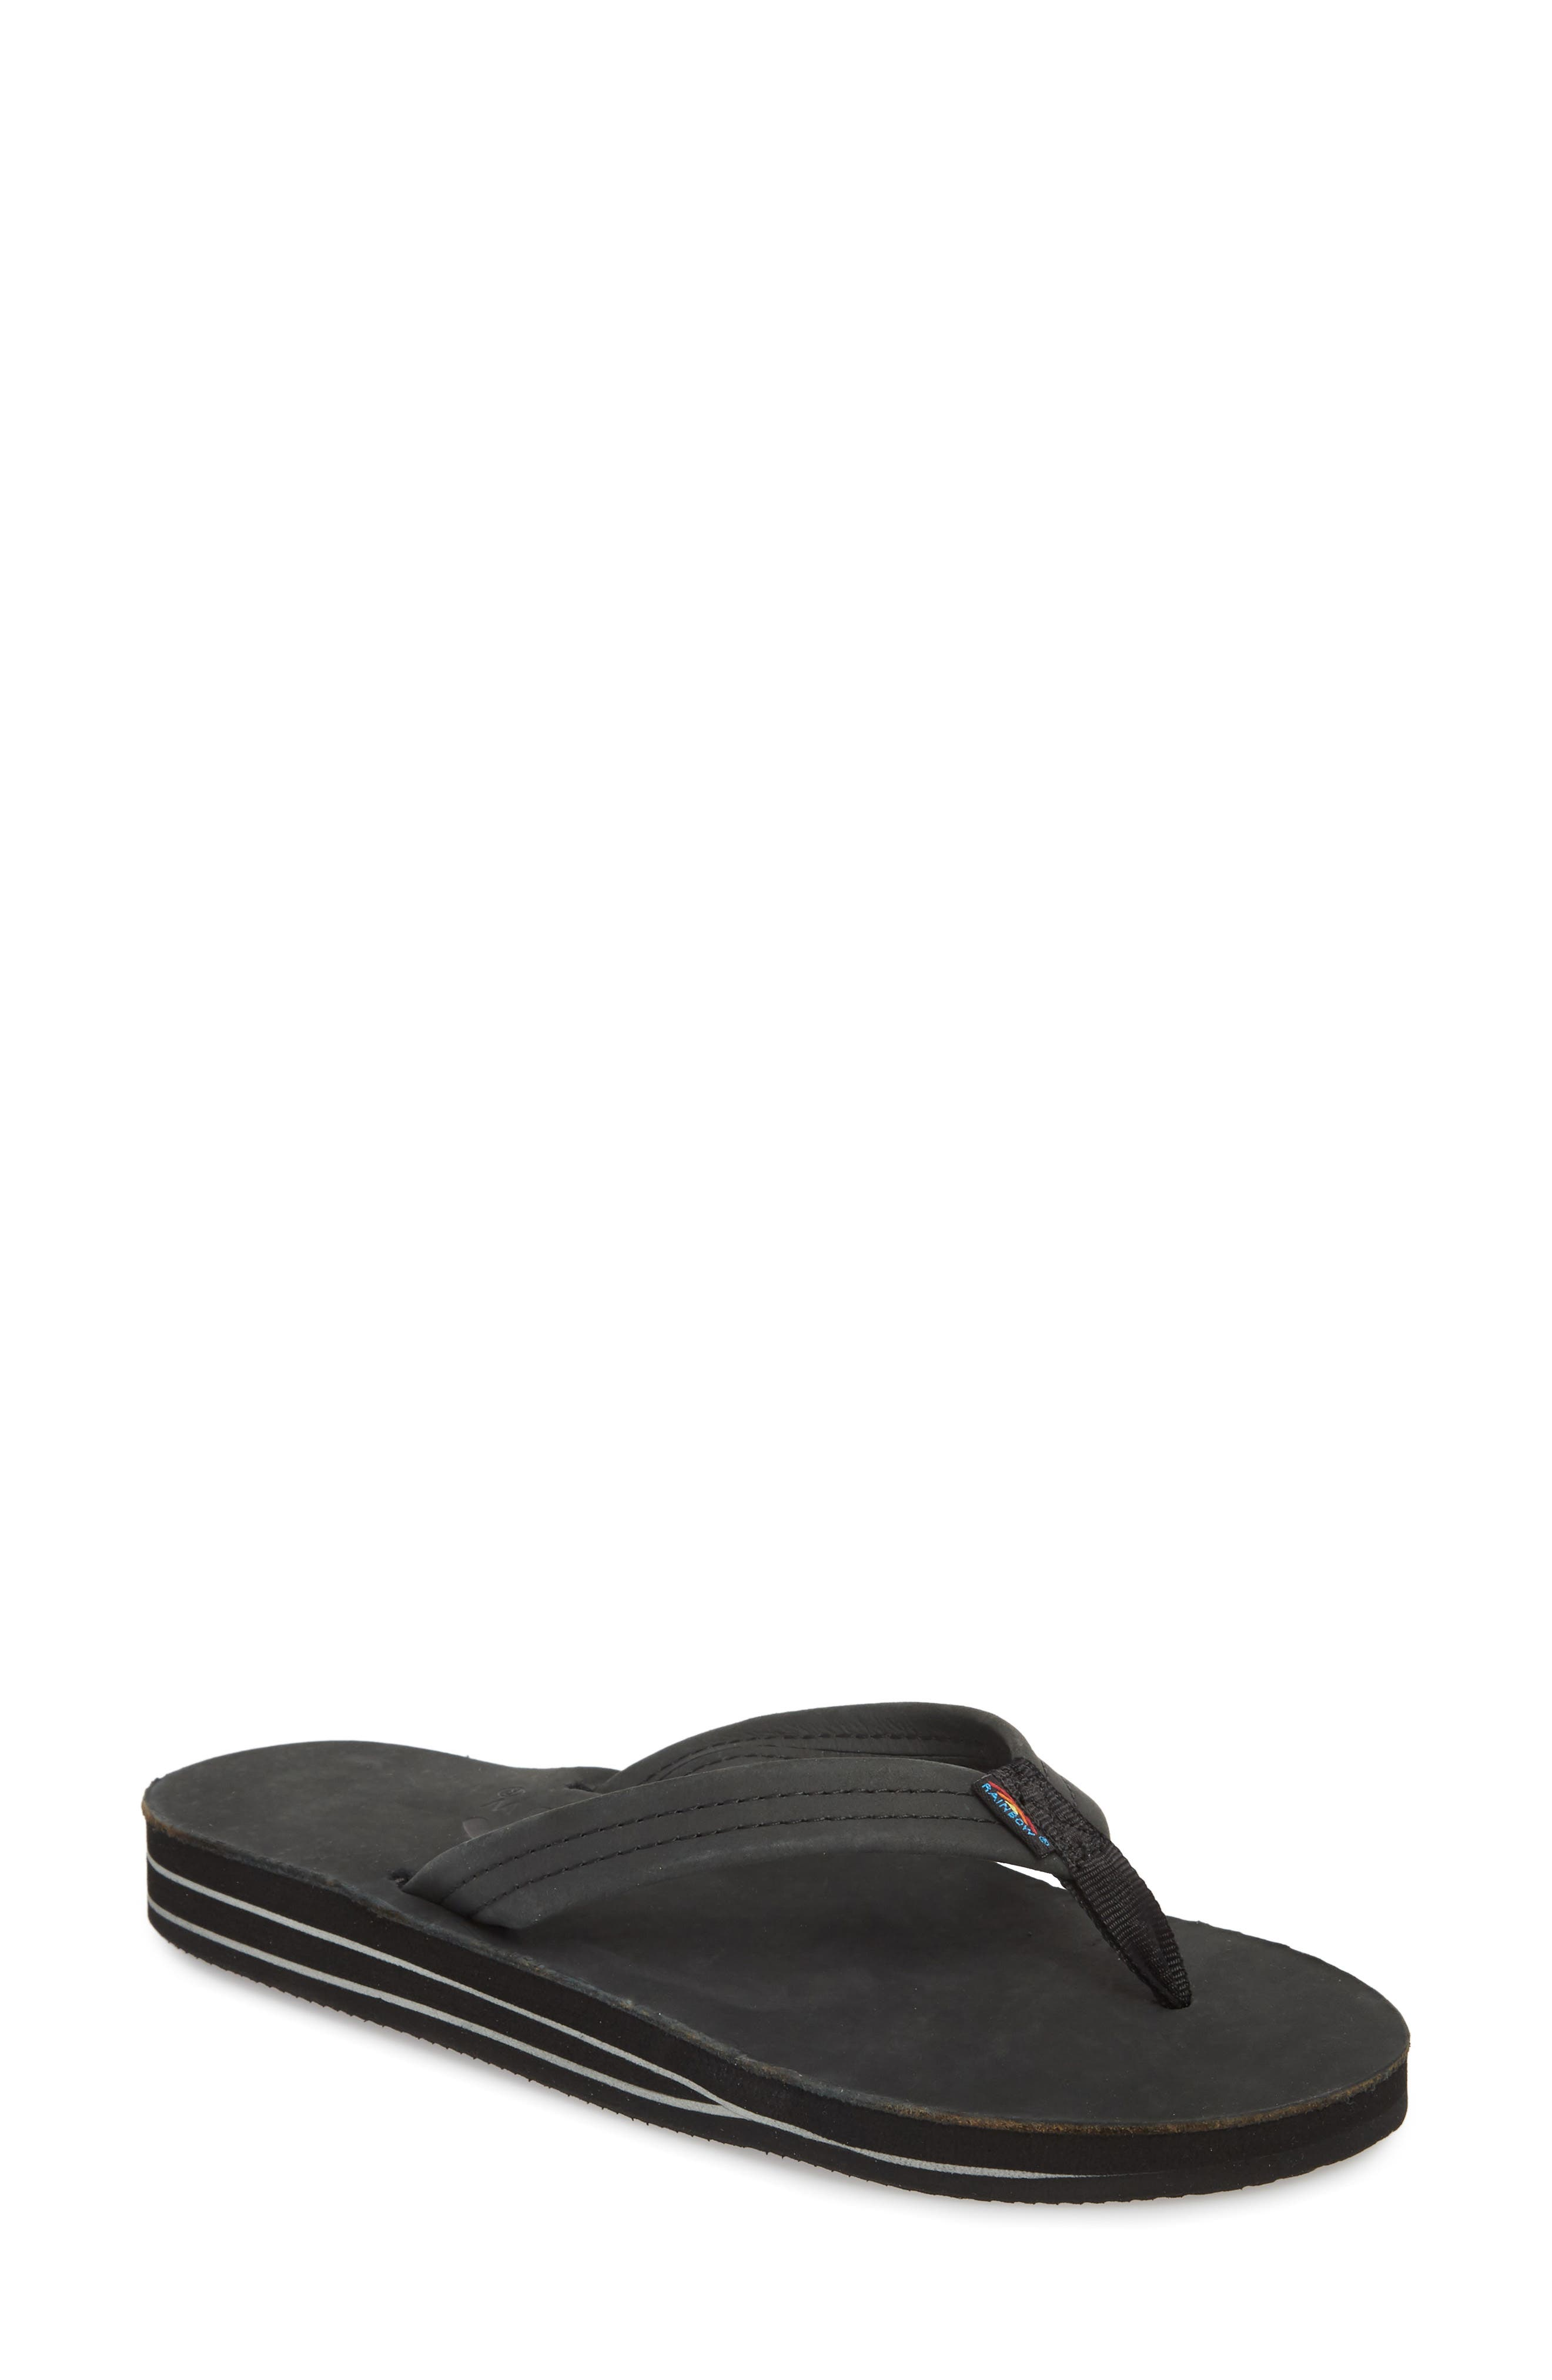 RAINBOW<SUP>®</SUP> Rainbow Double Layer Leather Flip Flop, Main, color, 001